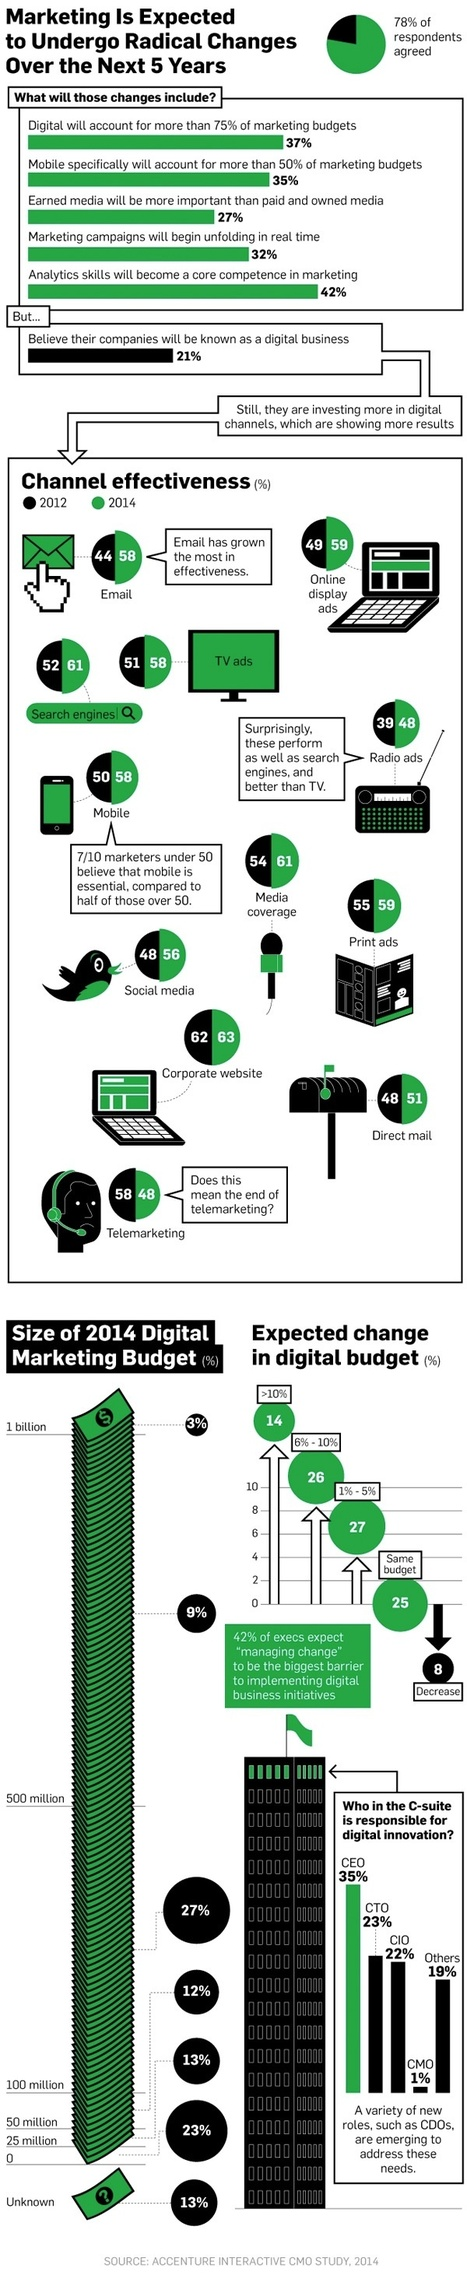 Digital to Grow to 75% of Marketing Budgets [Infographic] | Digital Brand Marketing | Scoop.it